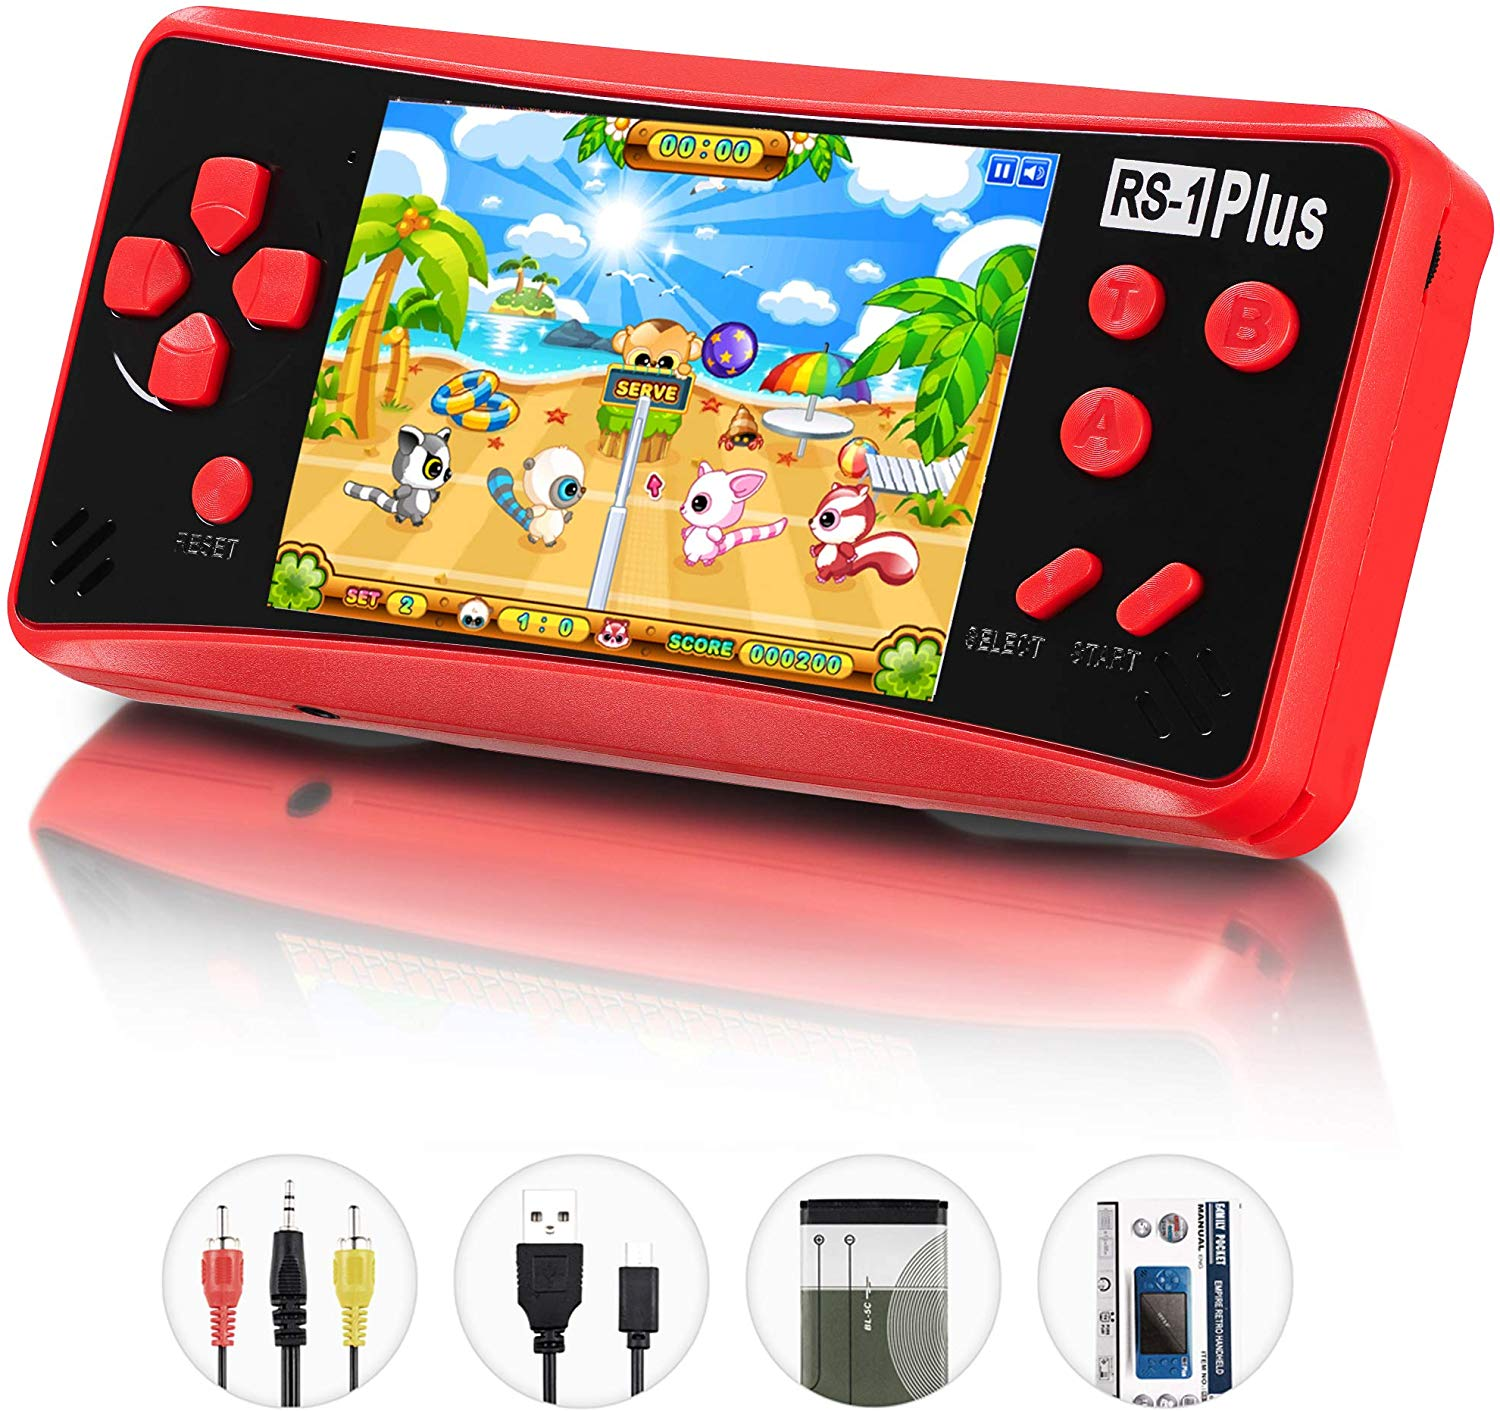 QINGSHE Handheld Game Console for Kids Adults, RS-1 PLUS Portable Classic Game Consoles